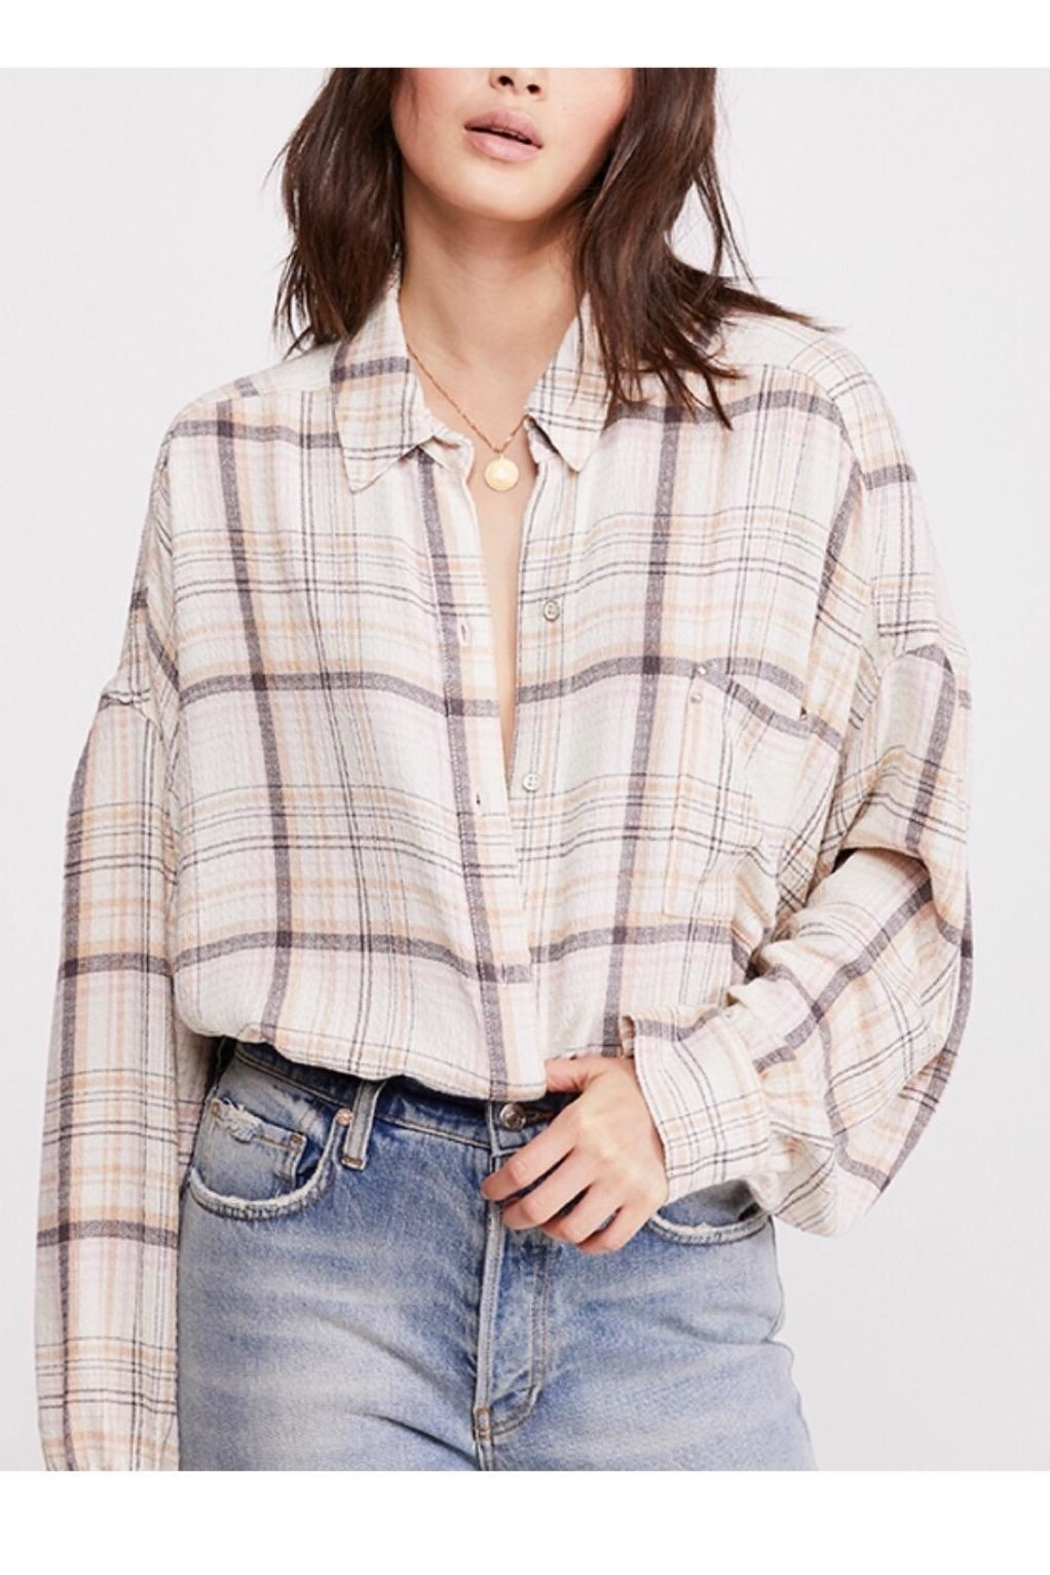 Free People Plaid Buttondown Top - Main Image